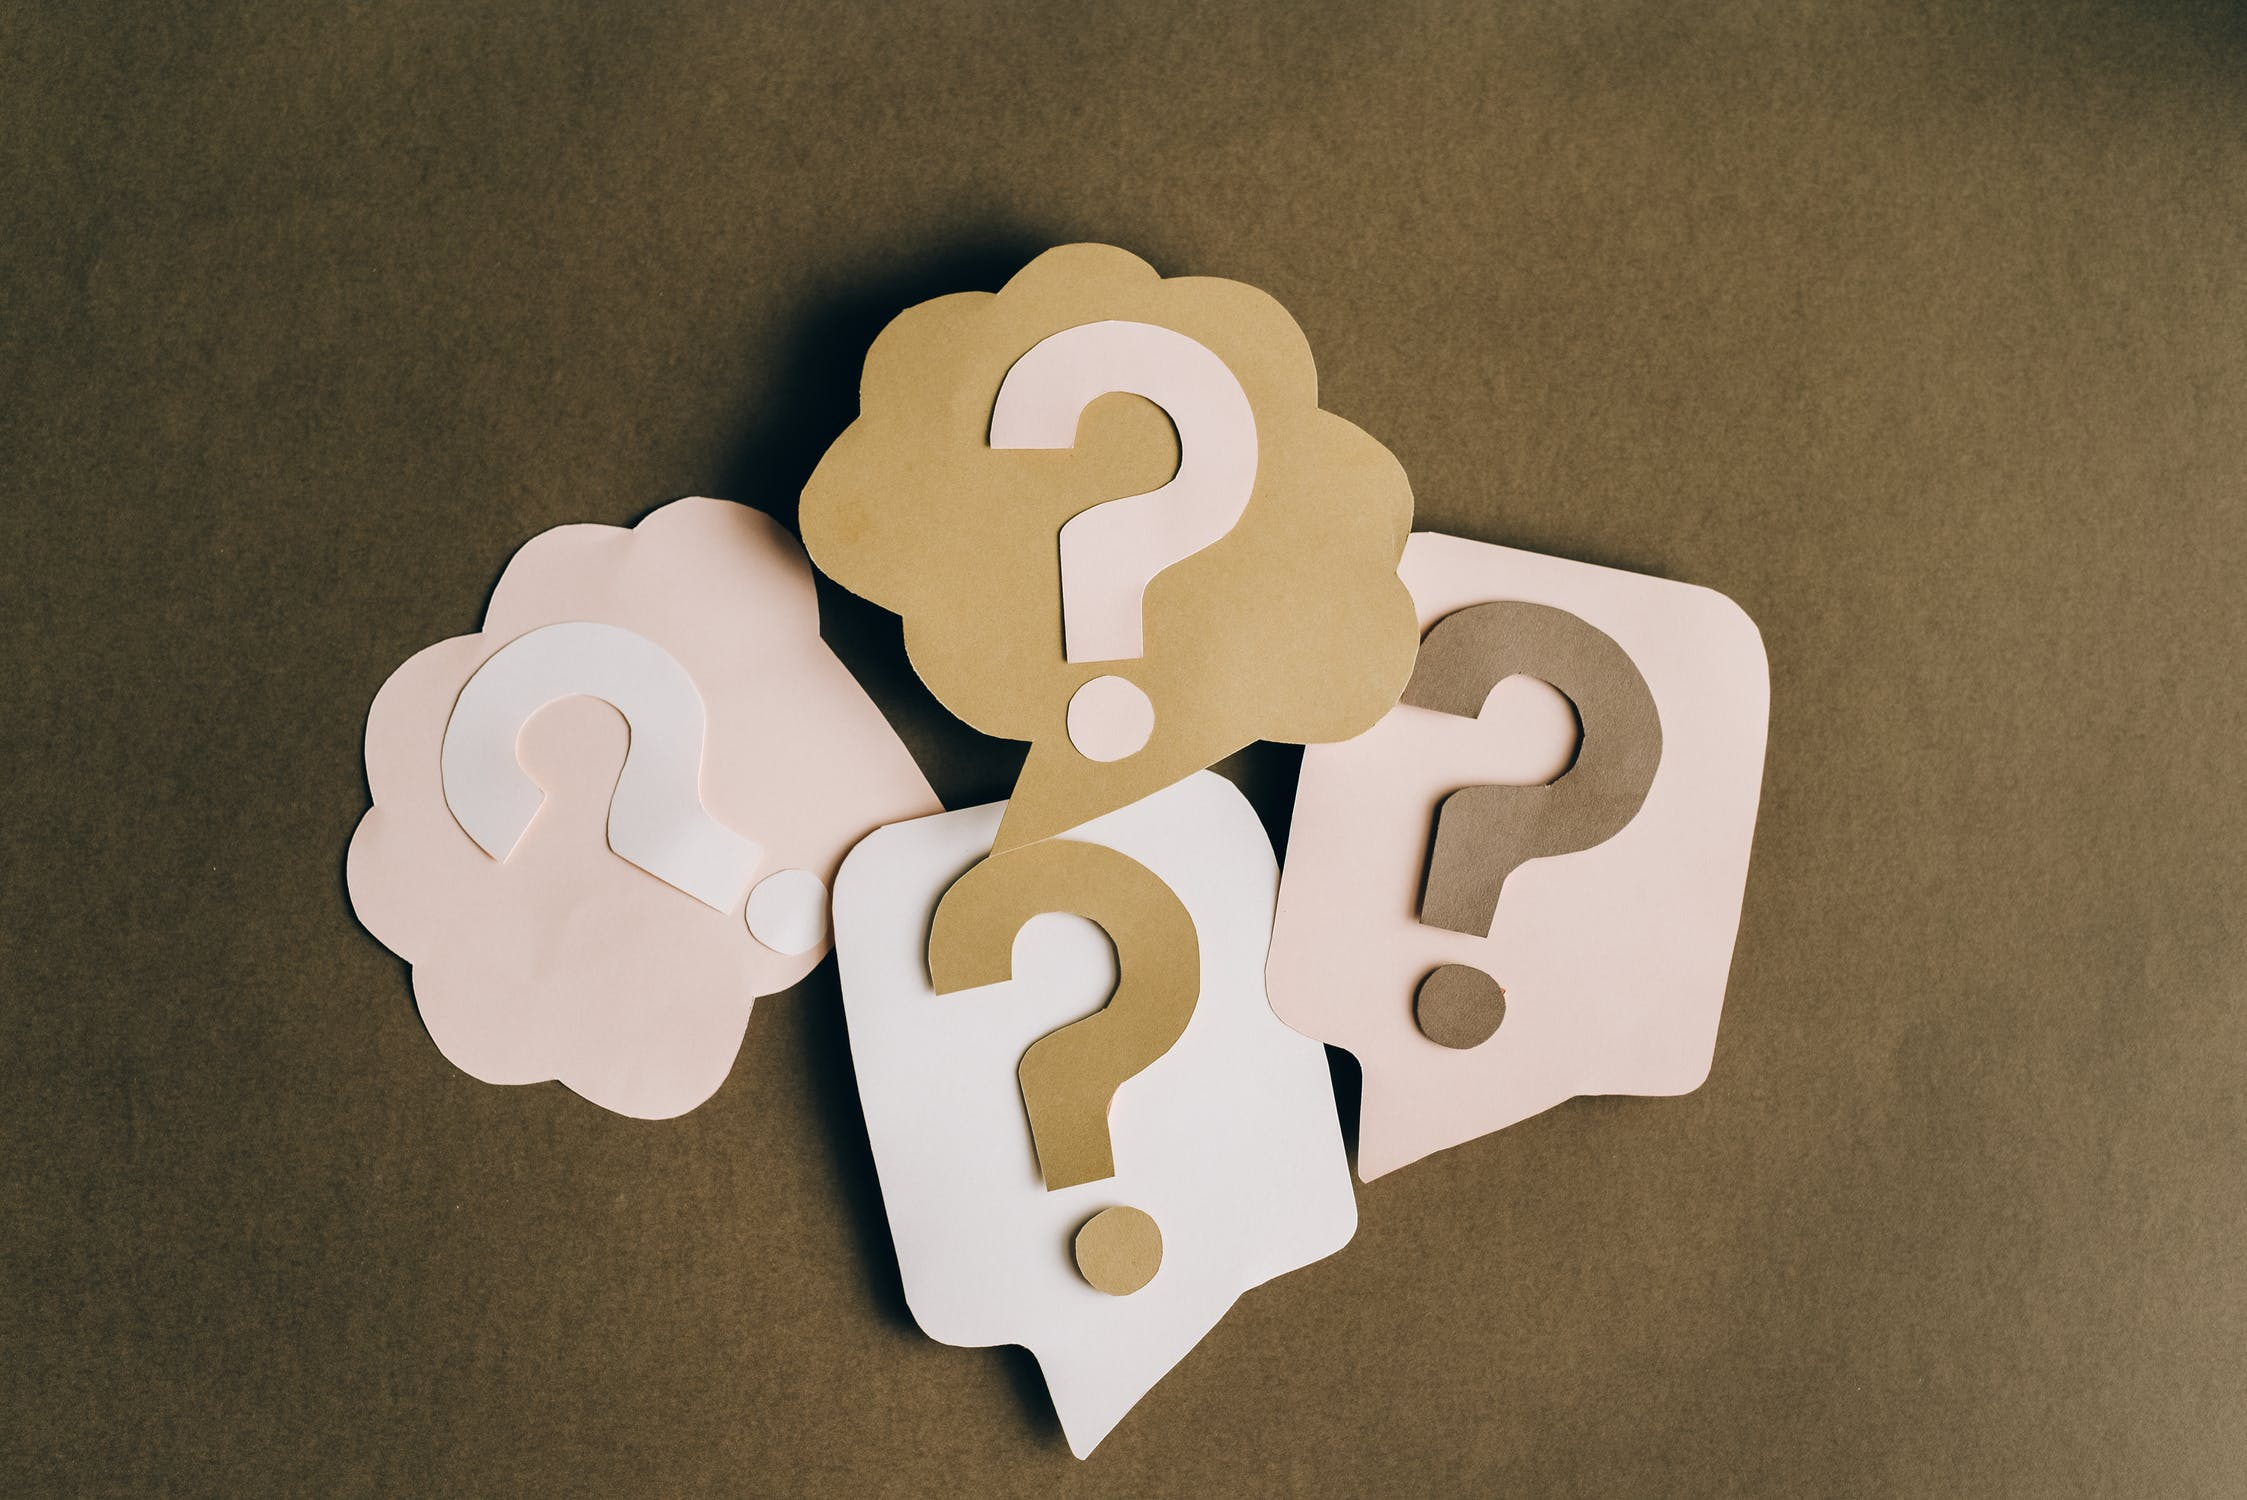 Paper cutouts of question marks in speech bubbles sit on a slate background. Photo used courtesy of Pexels.com